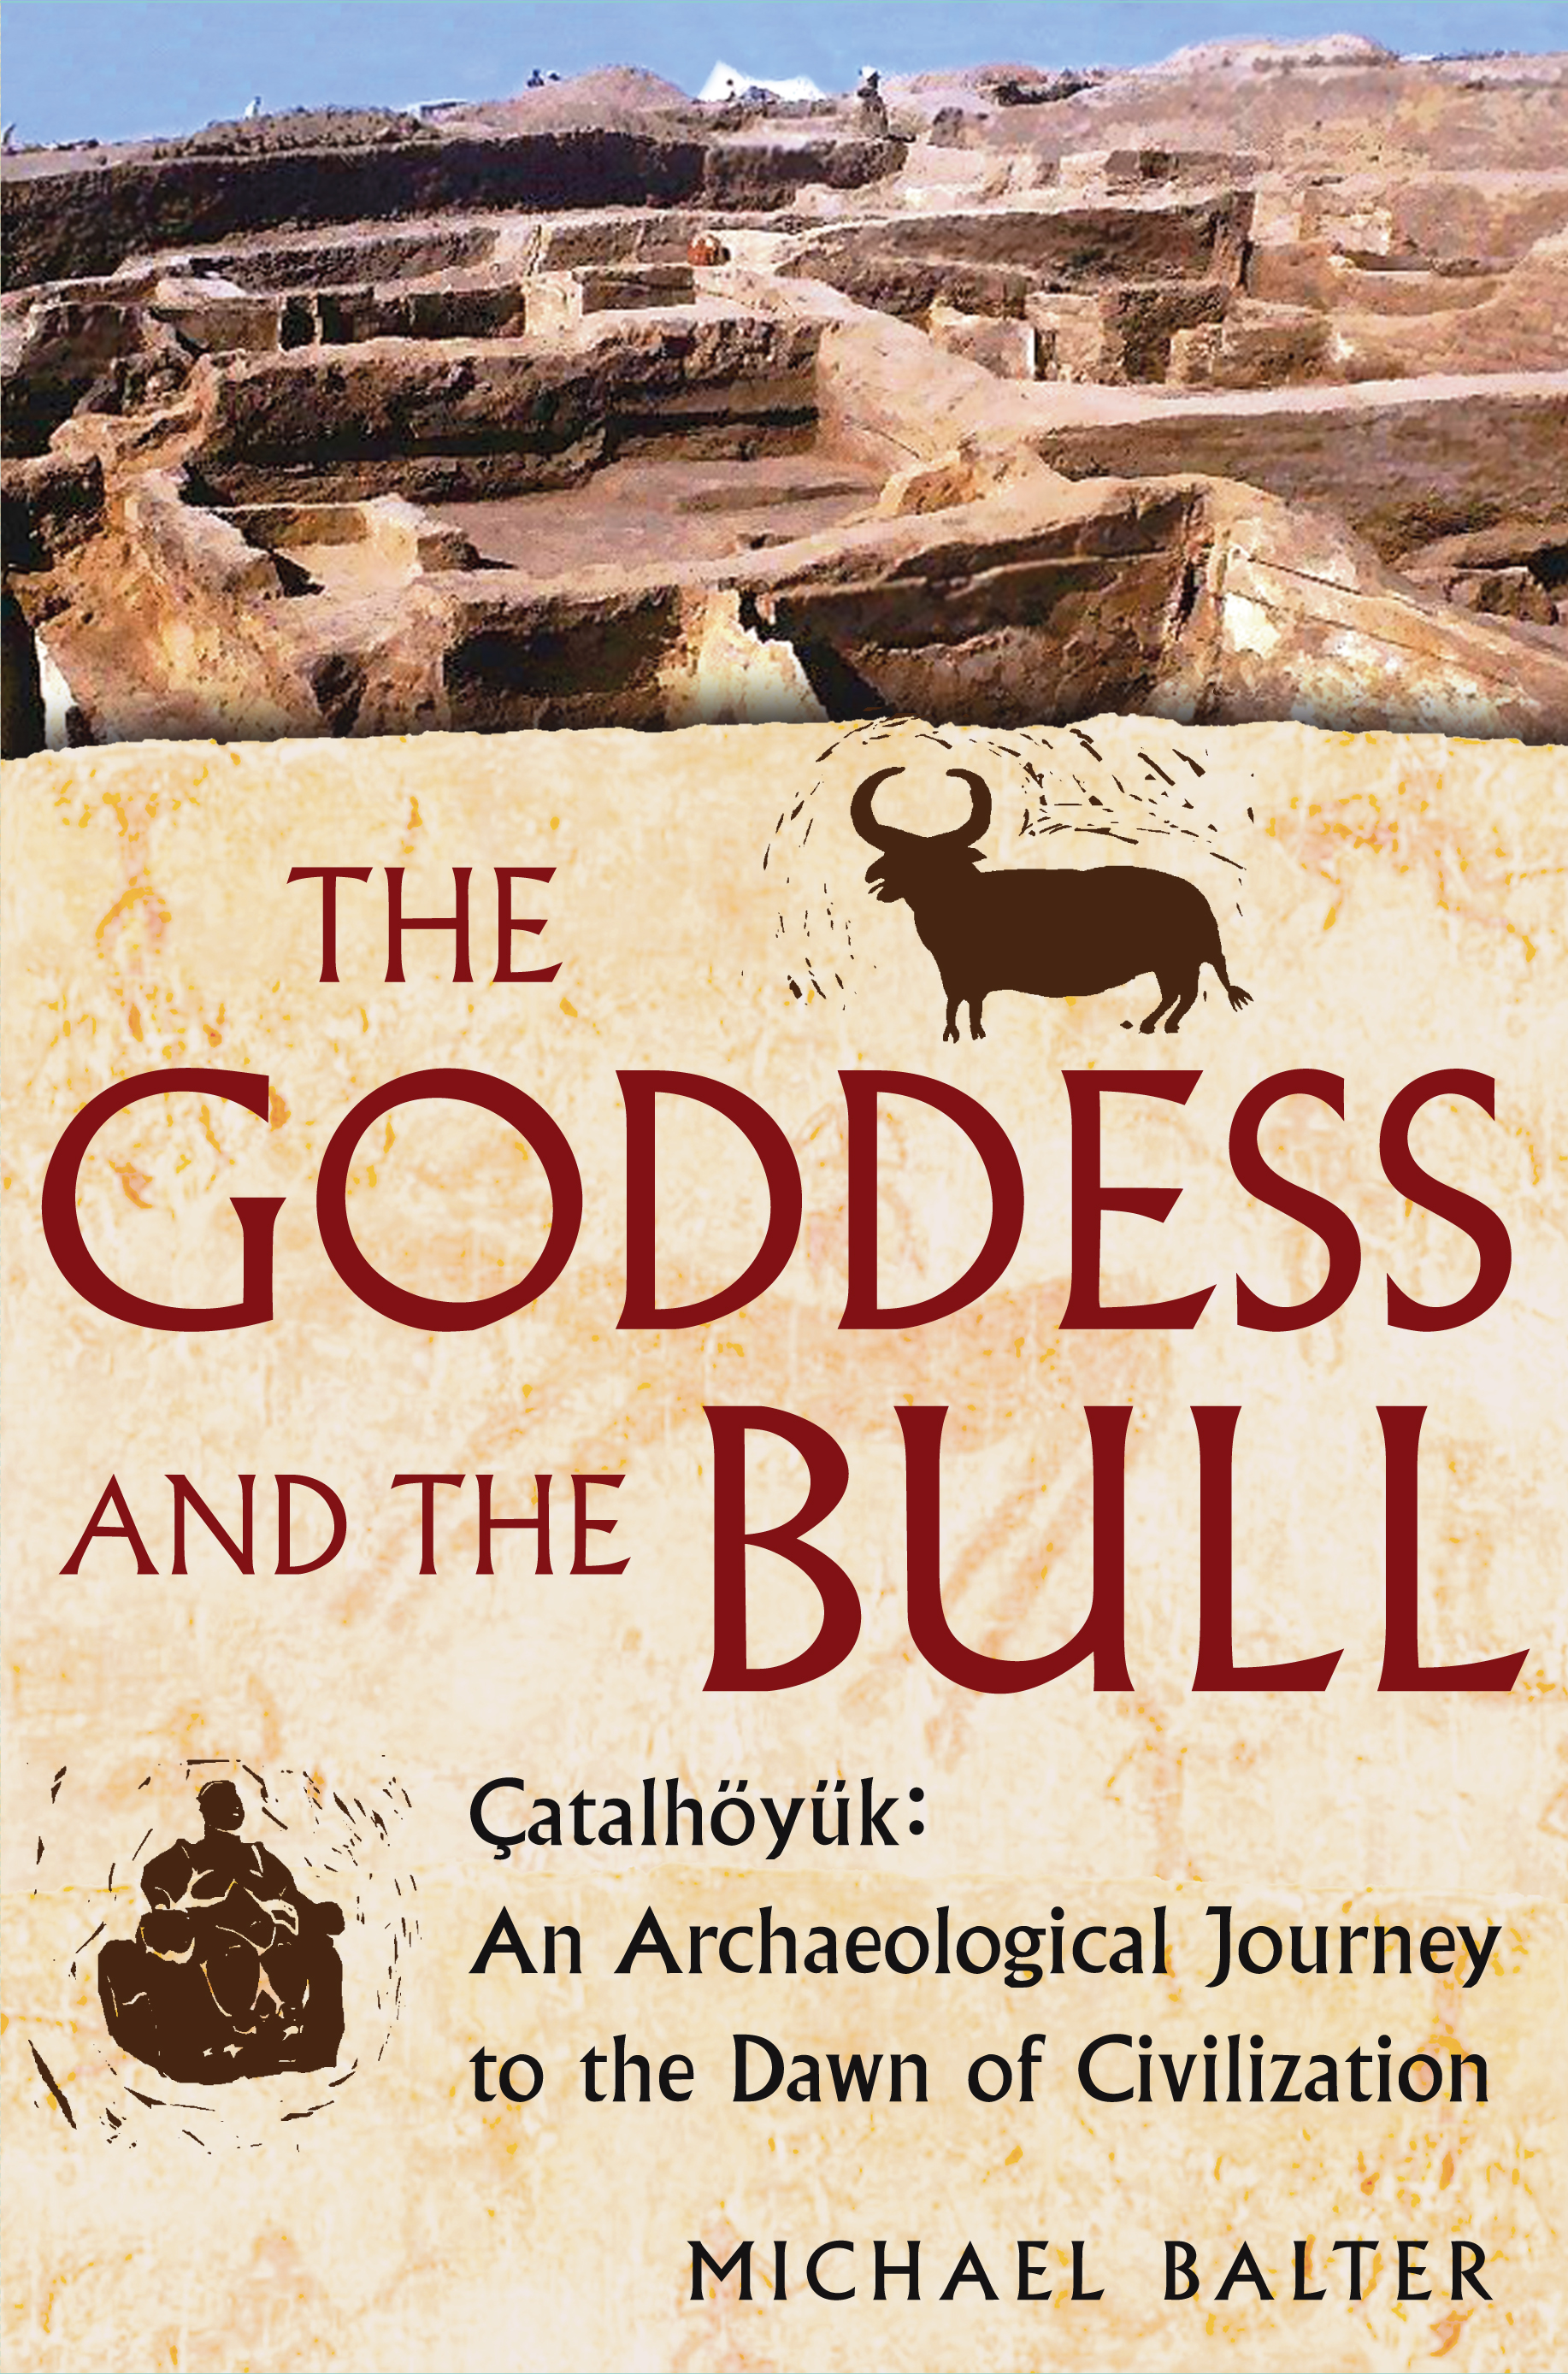 The goddess and the bull ebook by michael balter official cvr9781451603781 9781451603781 hr fandeluxe